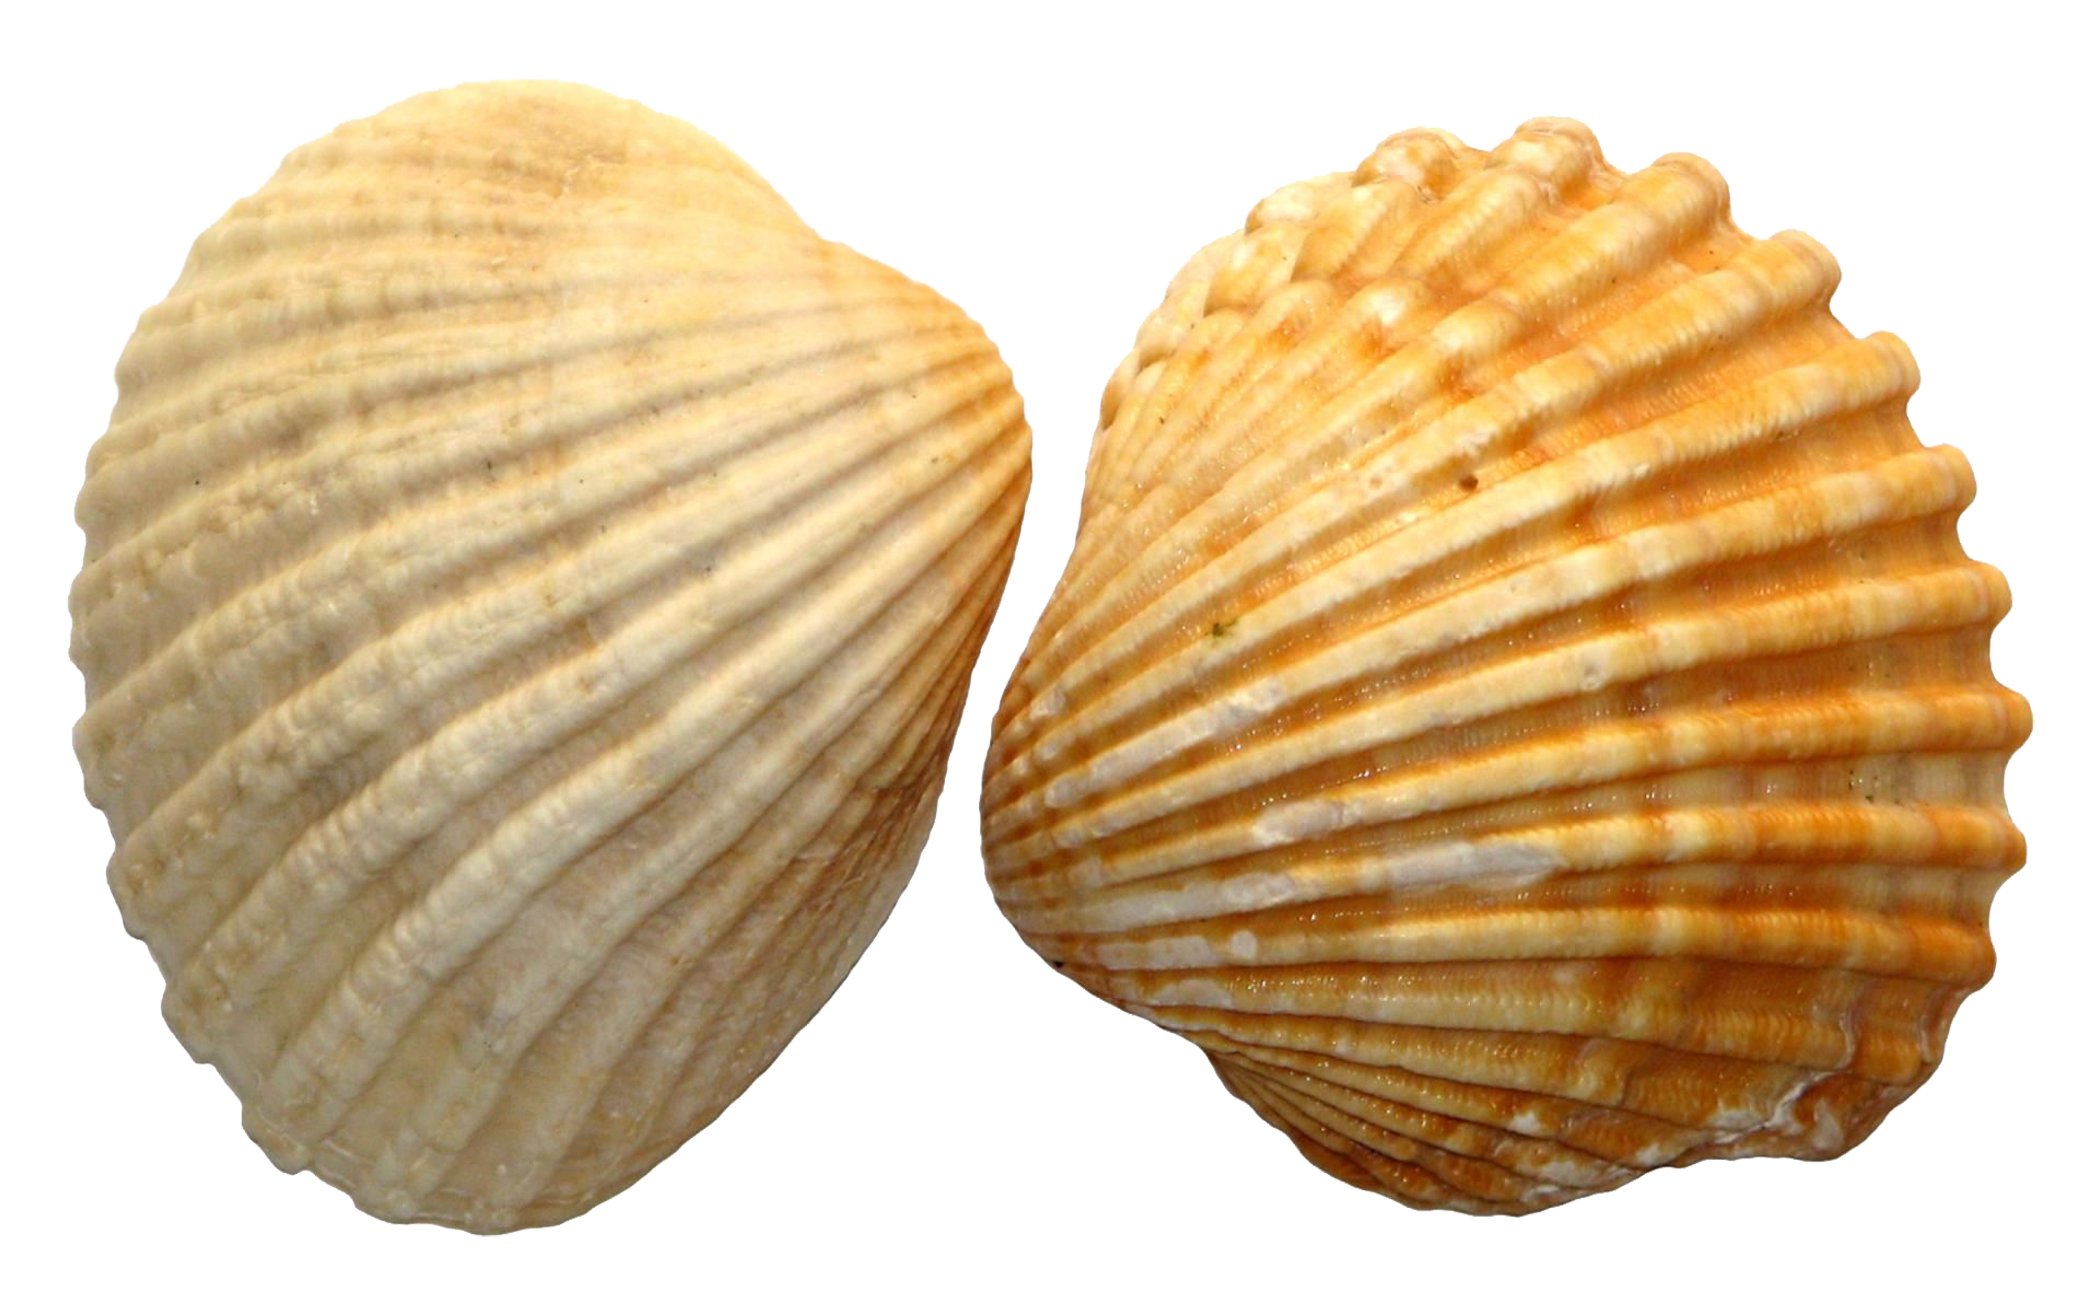 Download Shell PNG Image File.